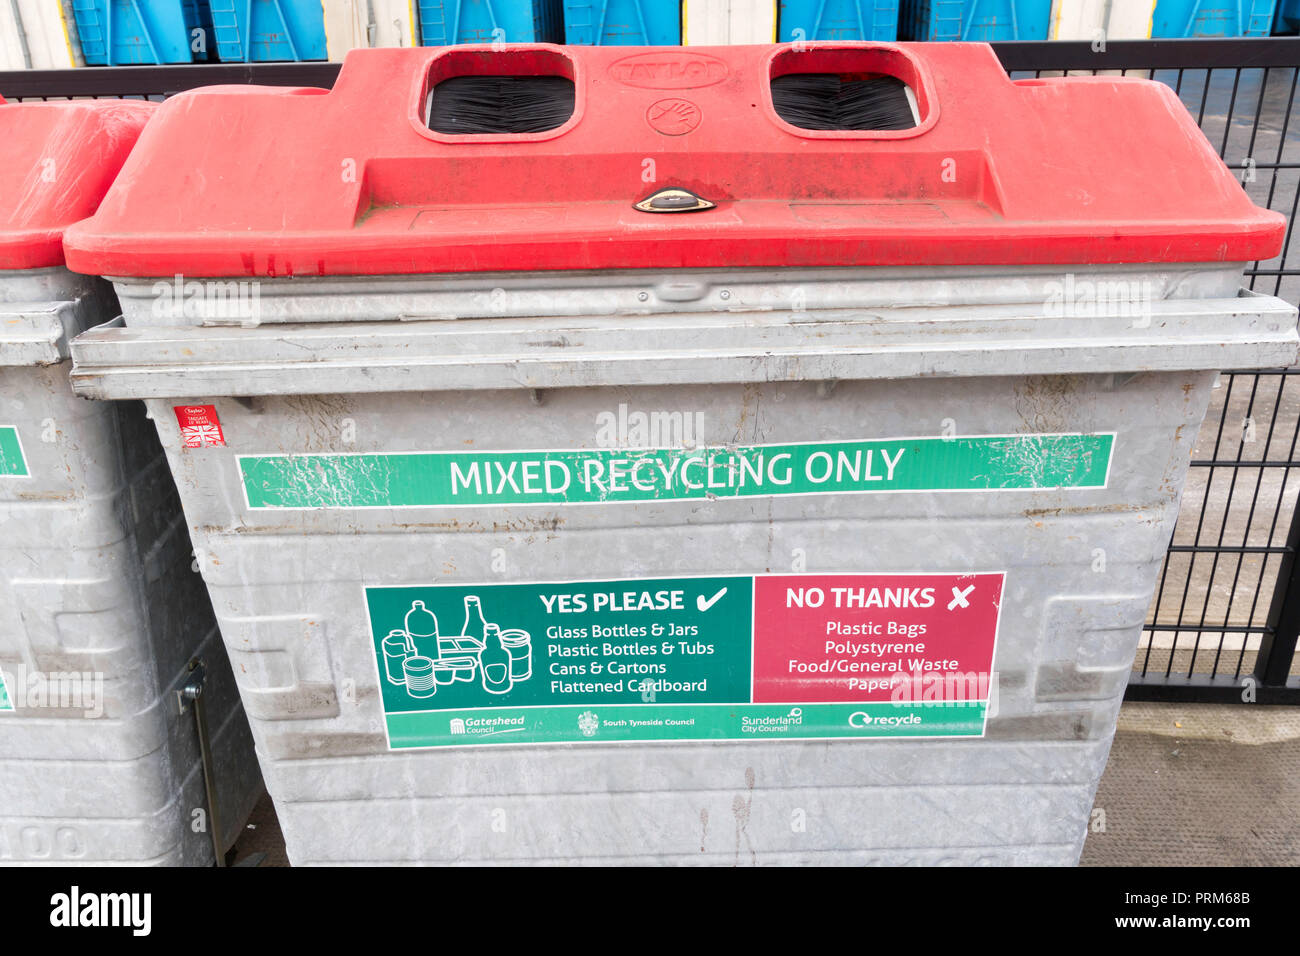 Mixed Recycling Bin at the Campground waste and recycling centre in Wrekenton, Gateshead, England, UK - Stock Image